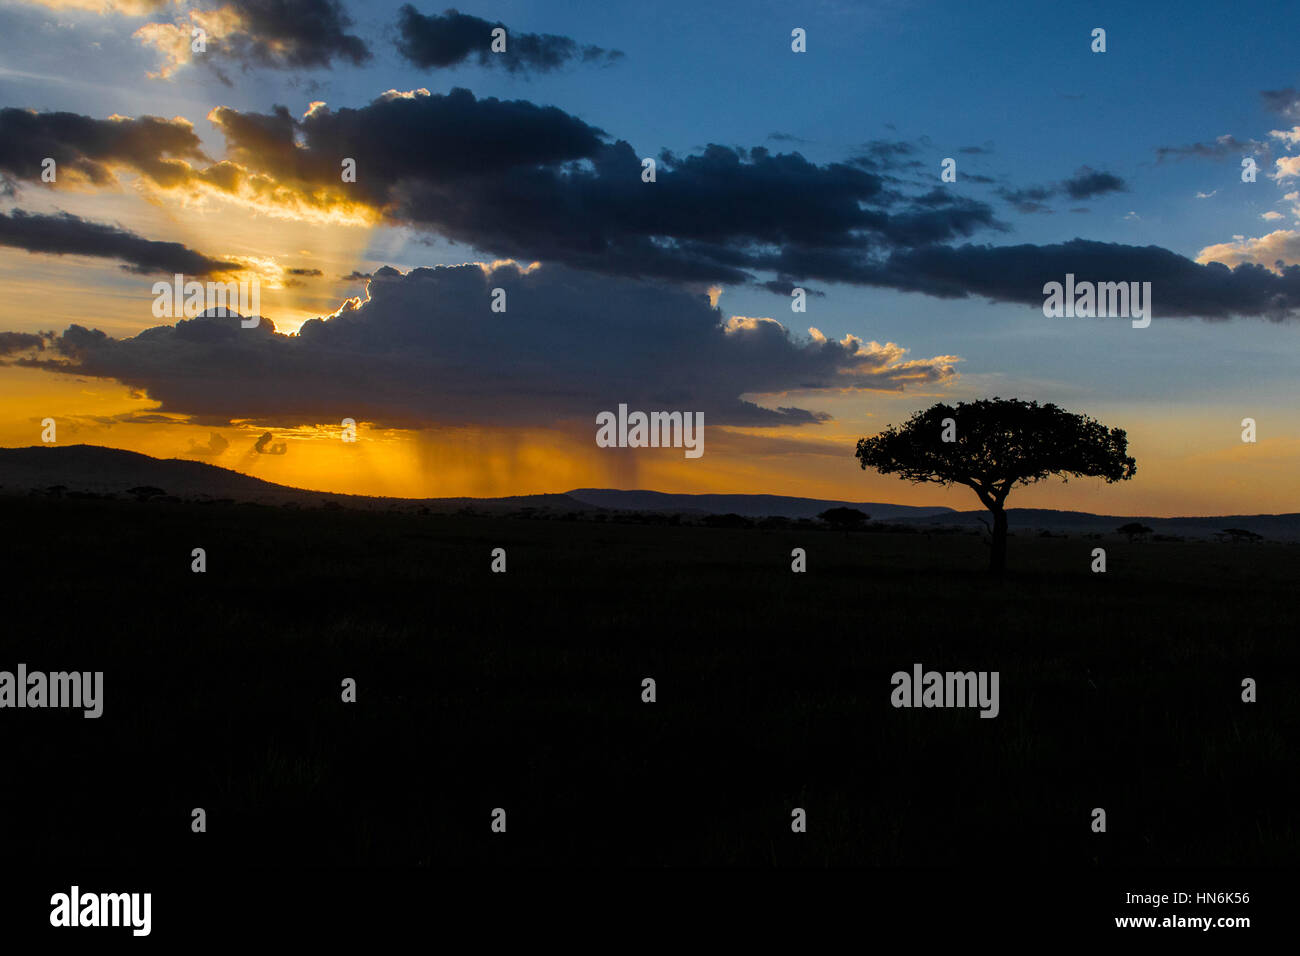 SERENGETI Tree Silhouette with African Sunset in Serengeti National Park, Tanzania, Africa - Stock Image